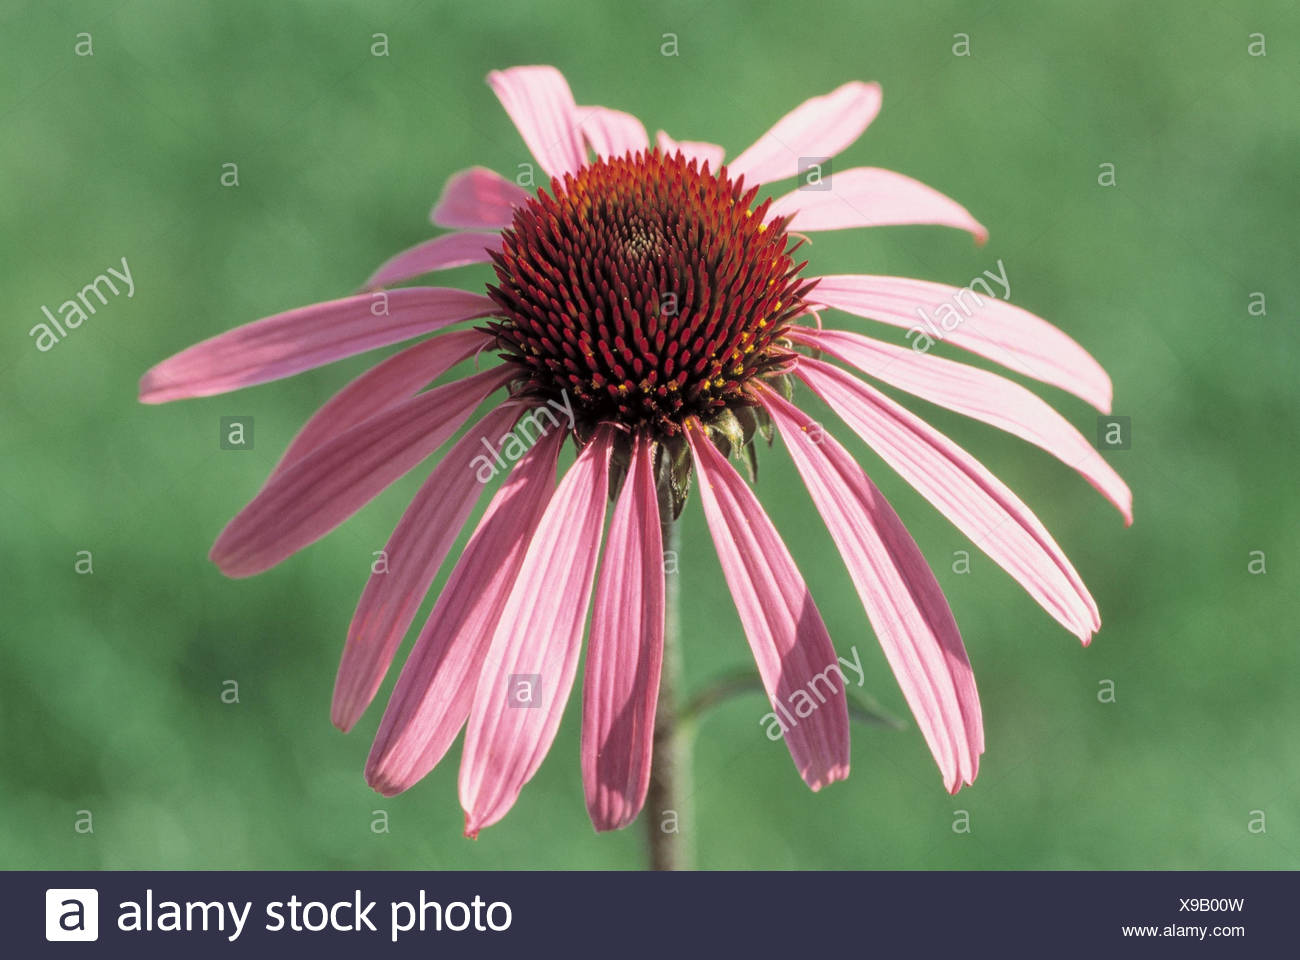 Medicinal plants, red solar hat, Echinacea purpurea, detail, blossom plants, medicinal plants, herbs, medicament plants, nature drugs, herbs, composites, Asteraceae, Brauneria purpurea, Echinacea intermedia, Echinacea speciosa, Rudbeckia hispida, Rudebeck - Stock Image